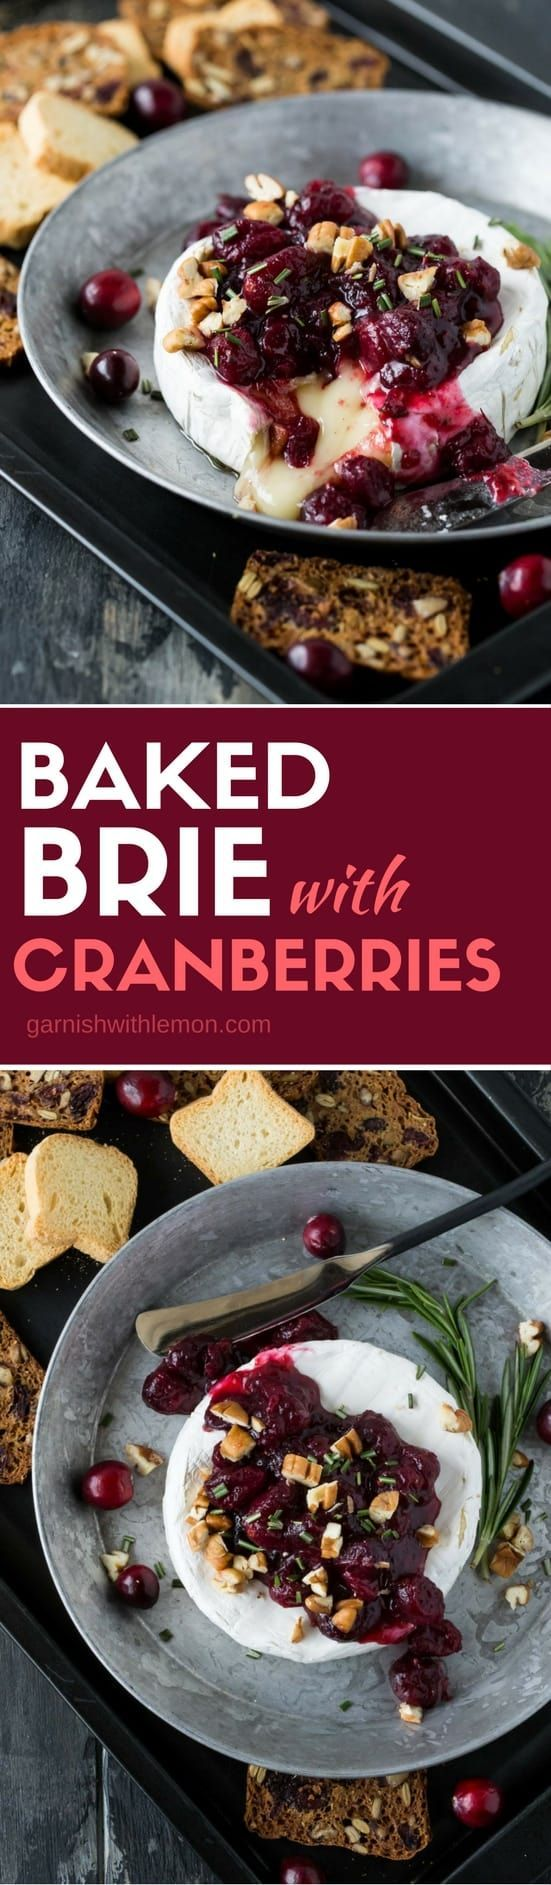 Baked Brie With Cranberries Easy Party Appetizer Garnish With Lemon Recipe Baked Brie Recipes Appetizers For Party